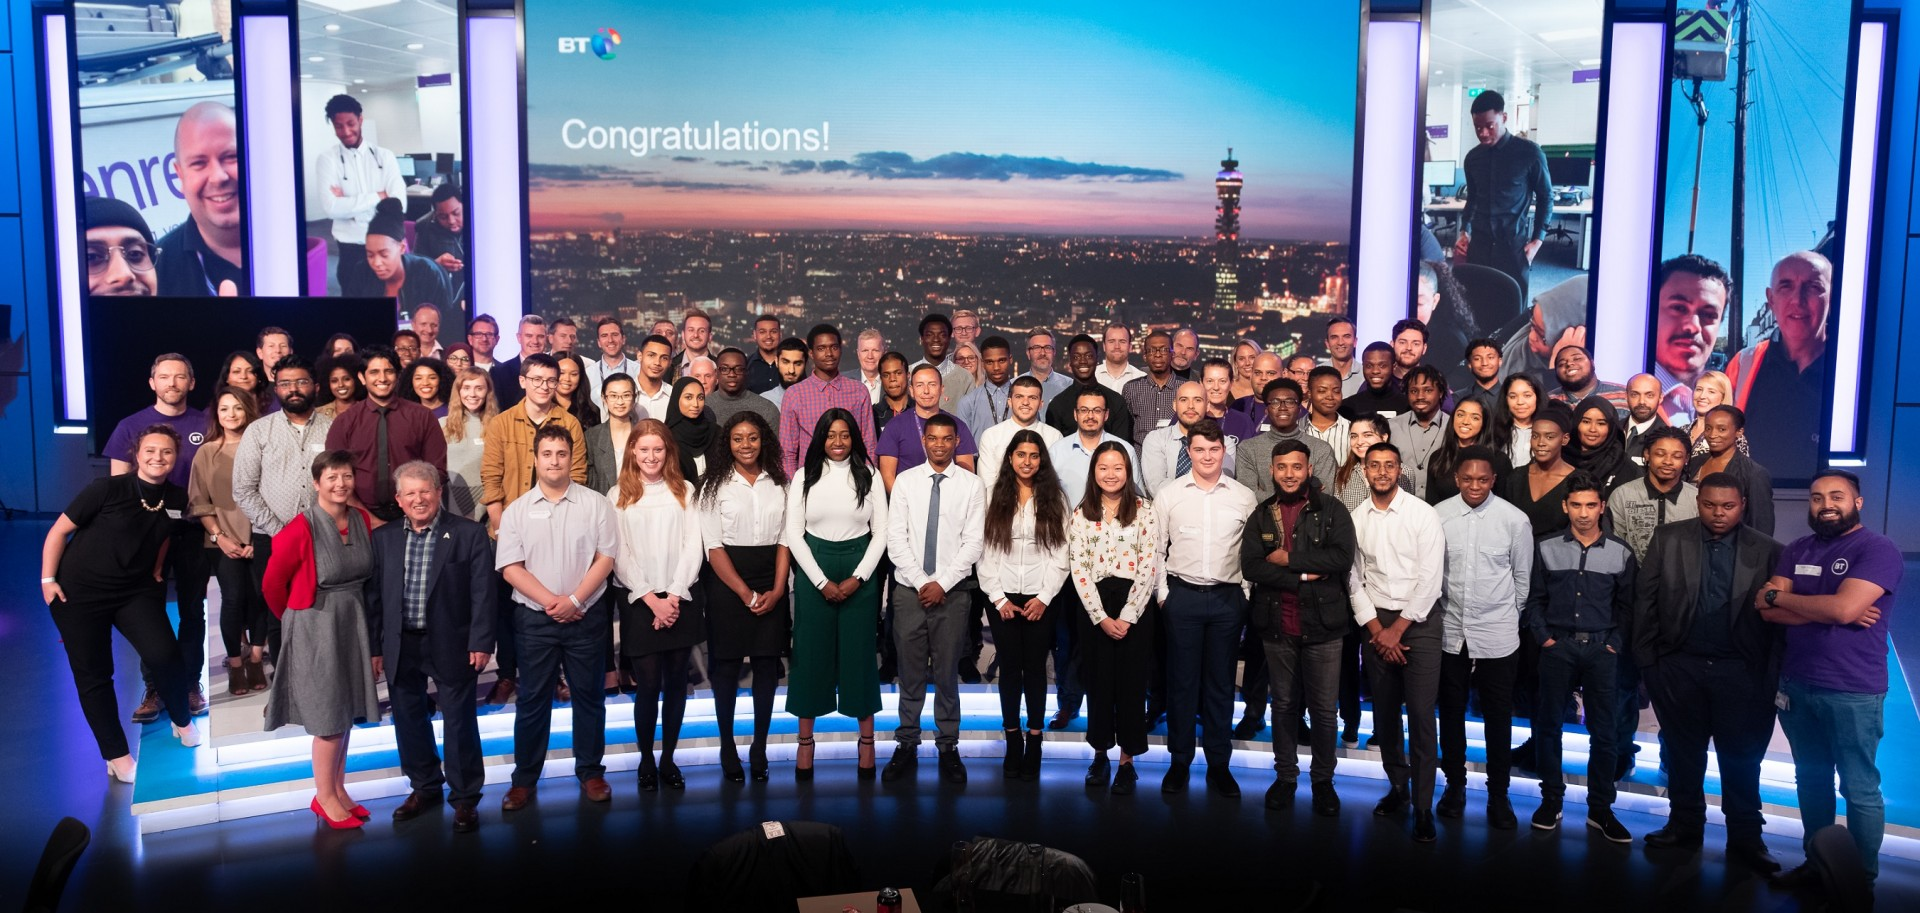 A group of 45 young people from across London have graduated from the latest BT Work Ready programme